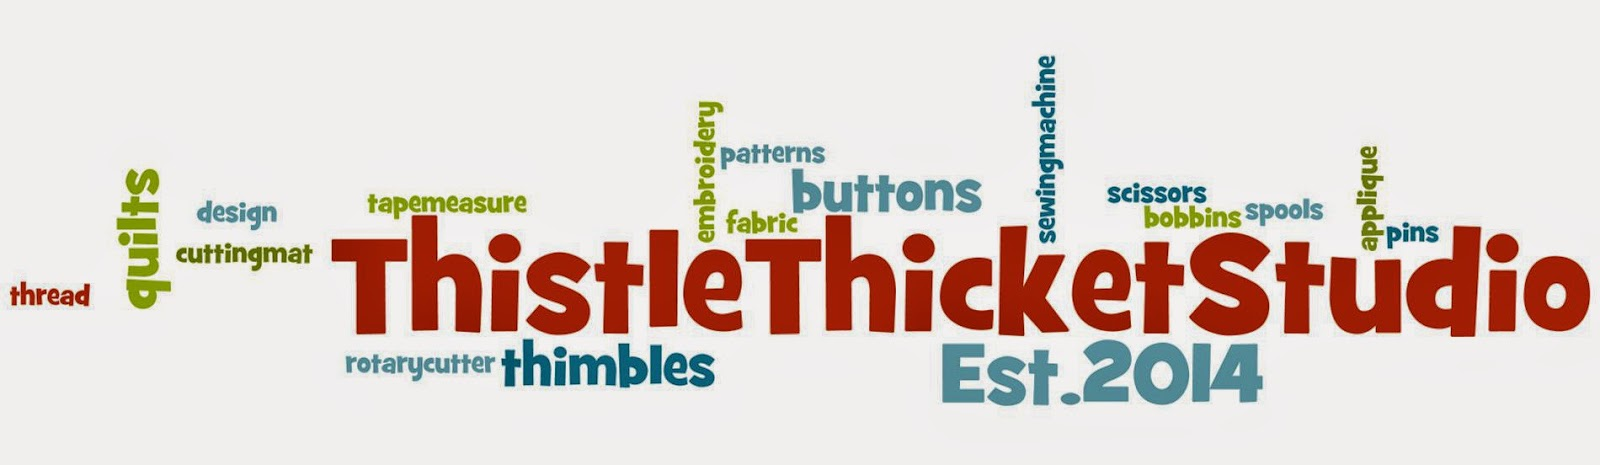 Quilting With Thistle Thicket Studio: Wordle Me This?